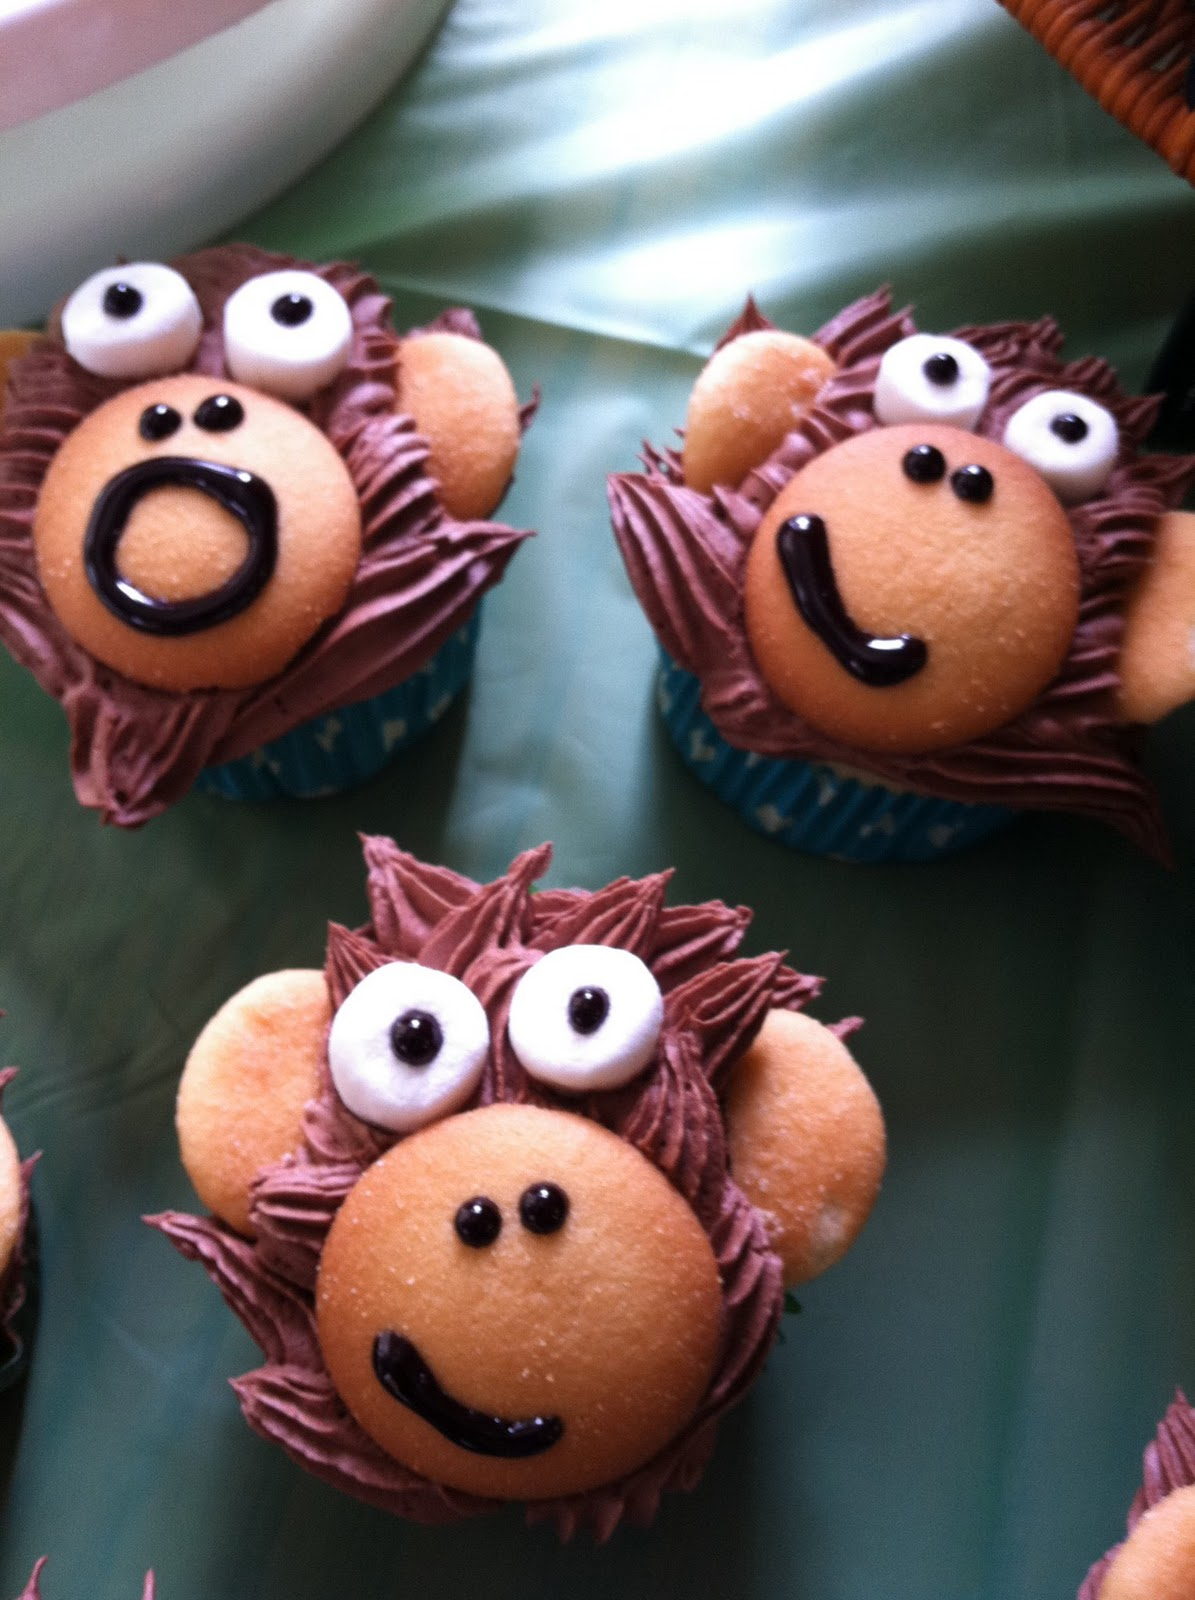 Monkey love cupcakes - photo#25